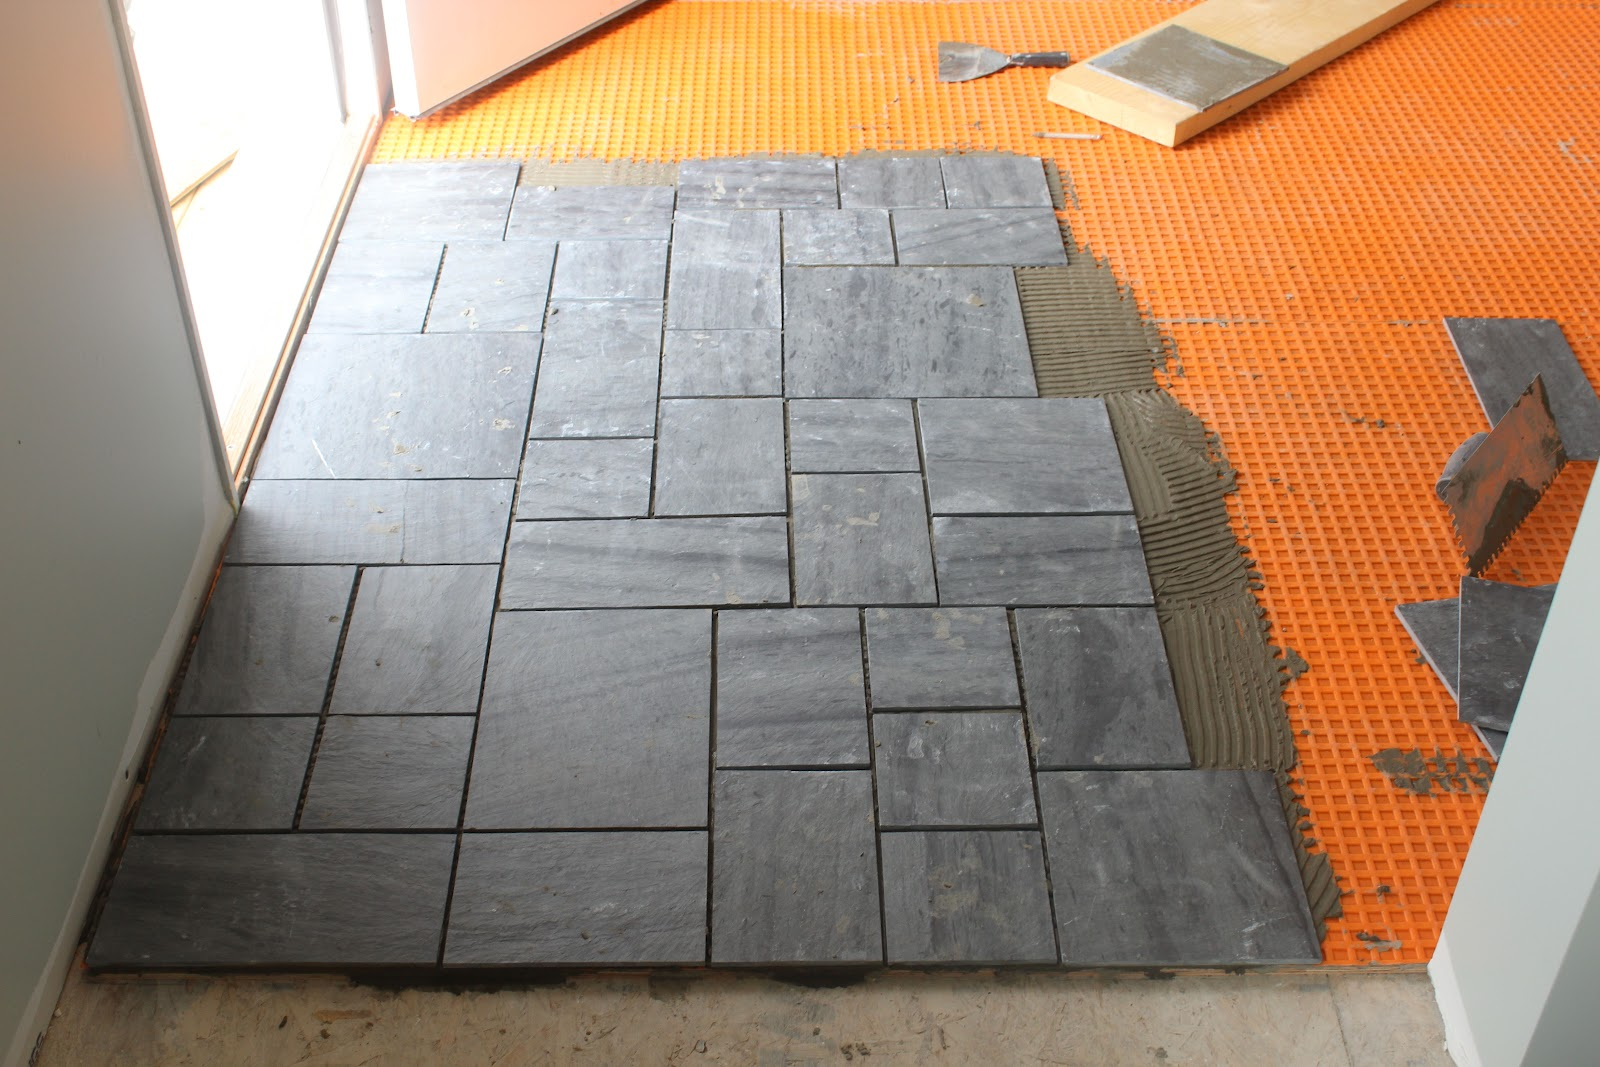 Tile Flooring Installation diy ceramic floor tile installation Installing A Slate Tile Floor